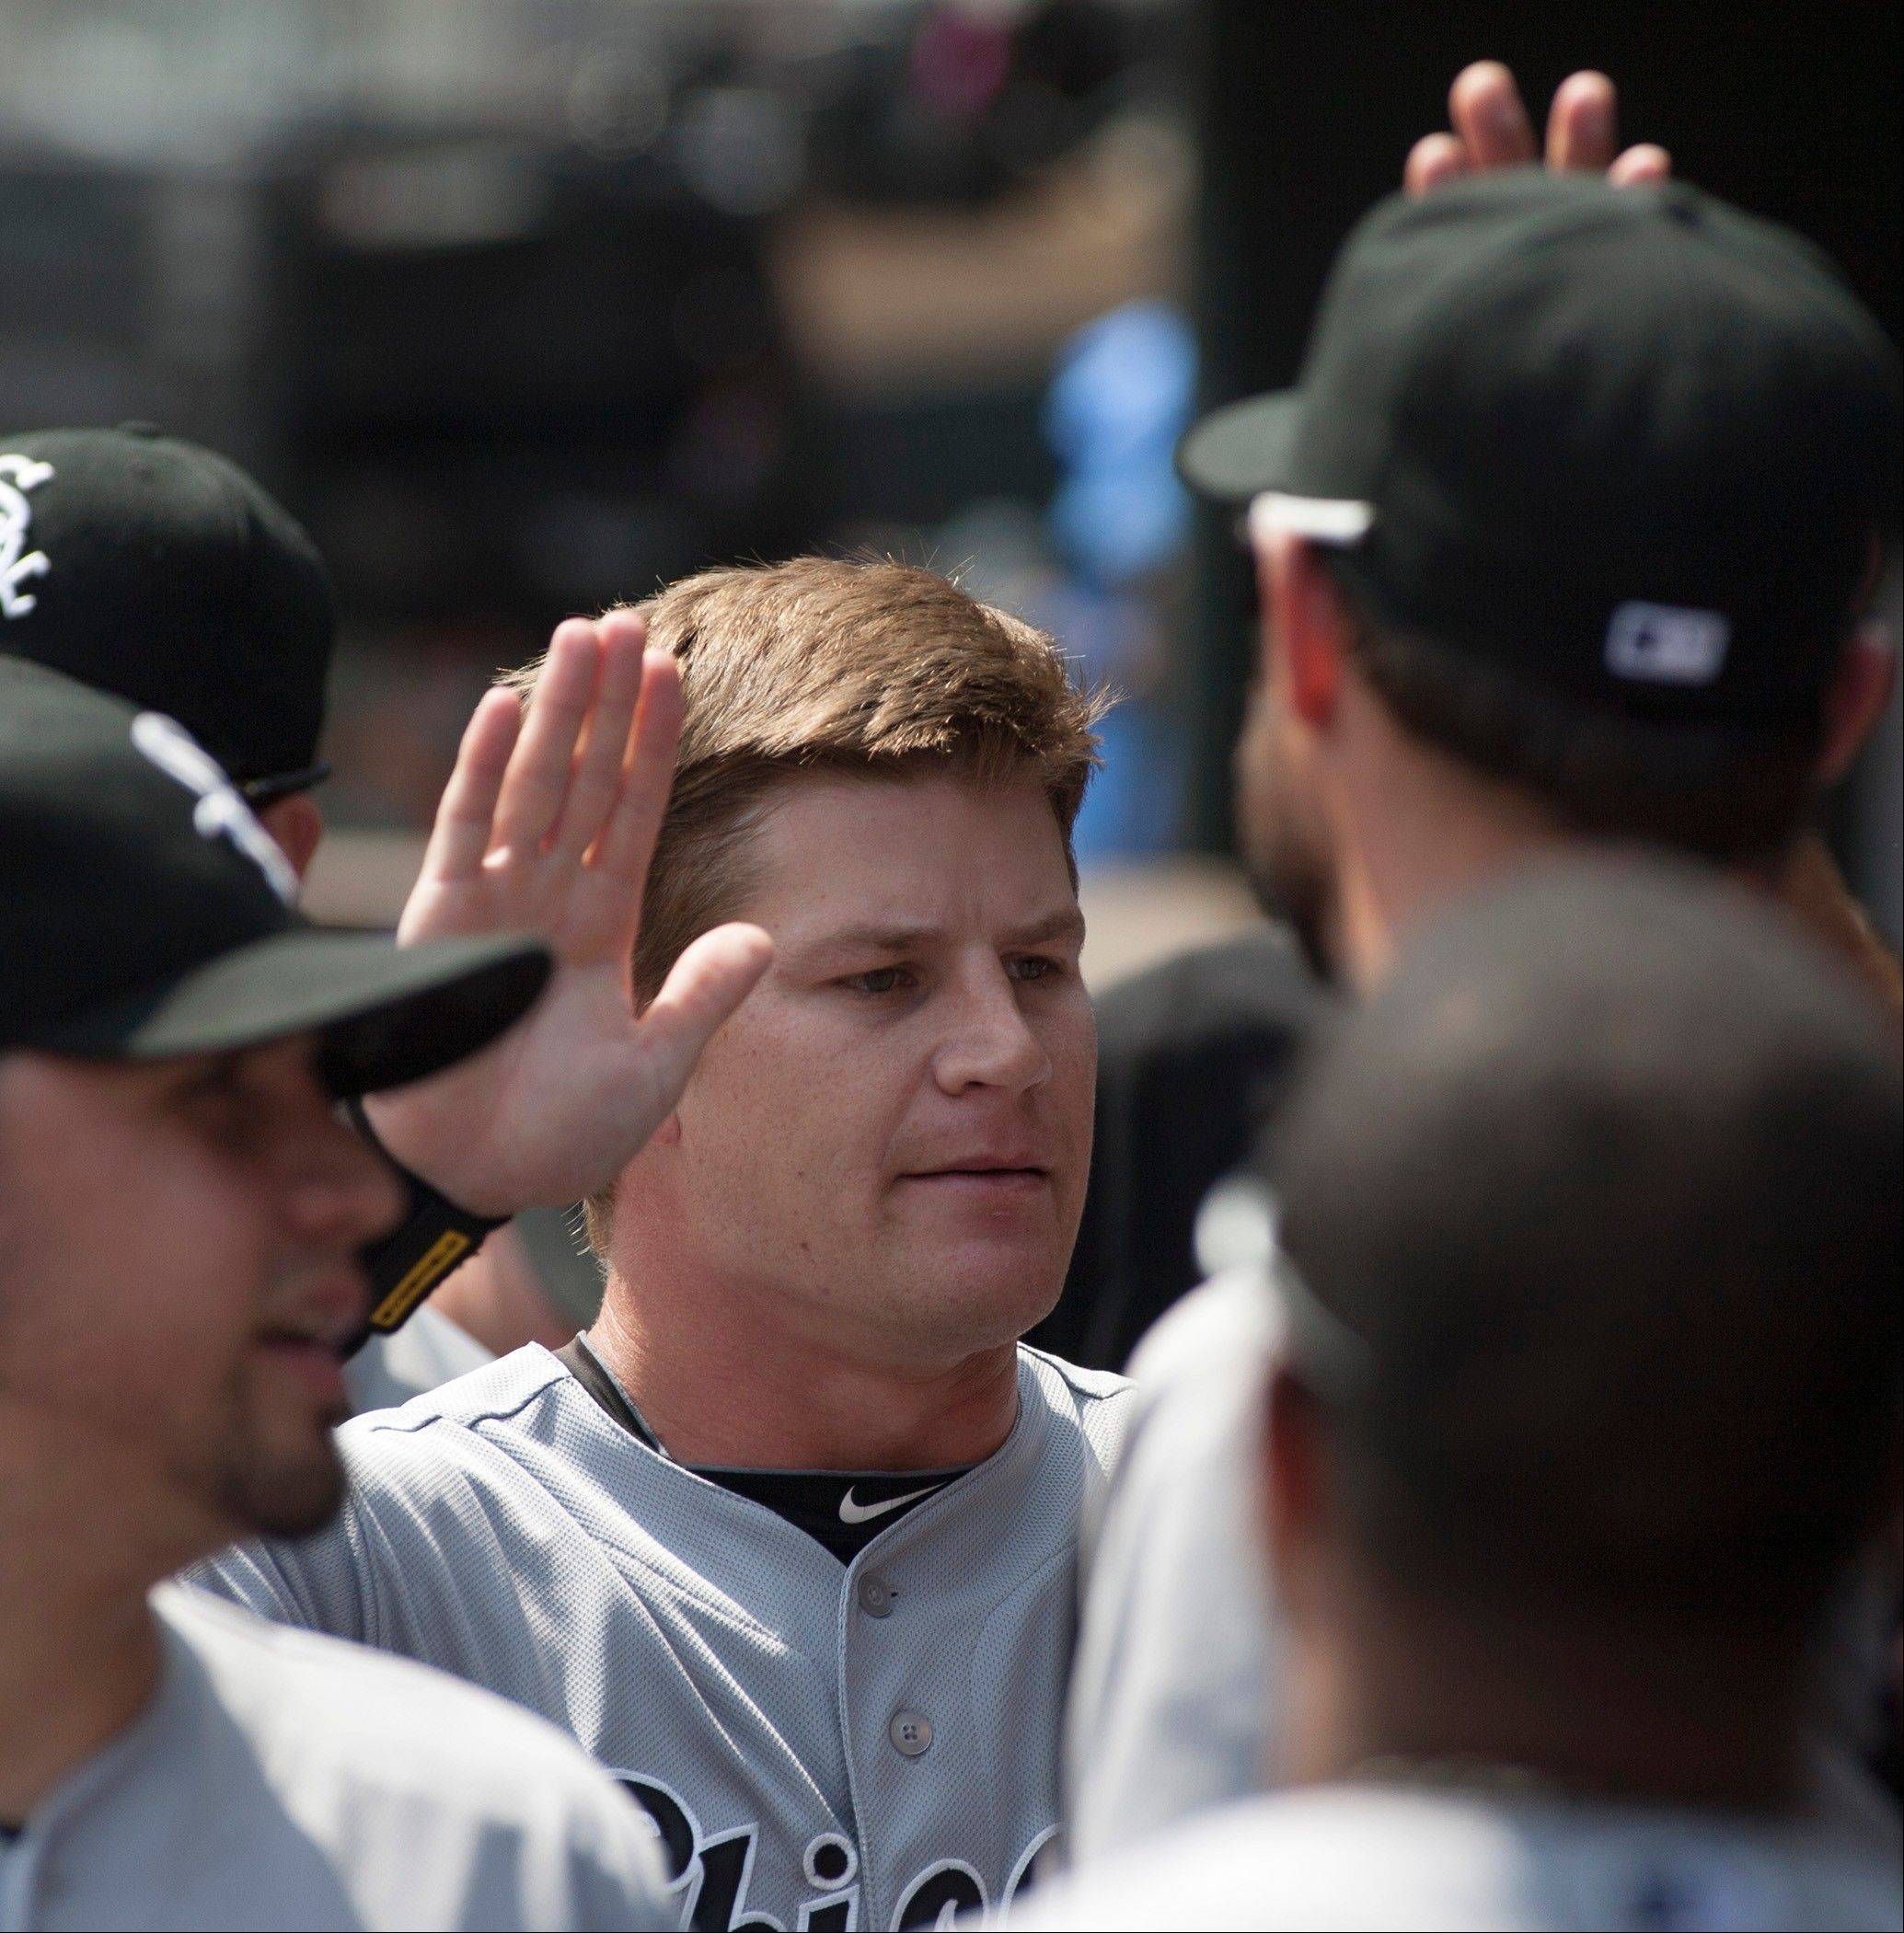 White Sox Gordon Beckham, center, is congratulated by teammates after scoring from second on an Alexei Ramirez single during the first inning of a baseball game against the Minnesota Twins, Sunday, Aug. 18, 2013, in Minneapolis.